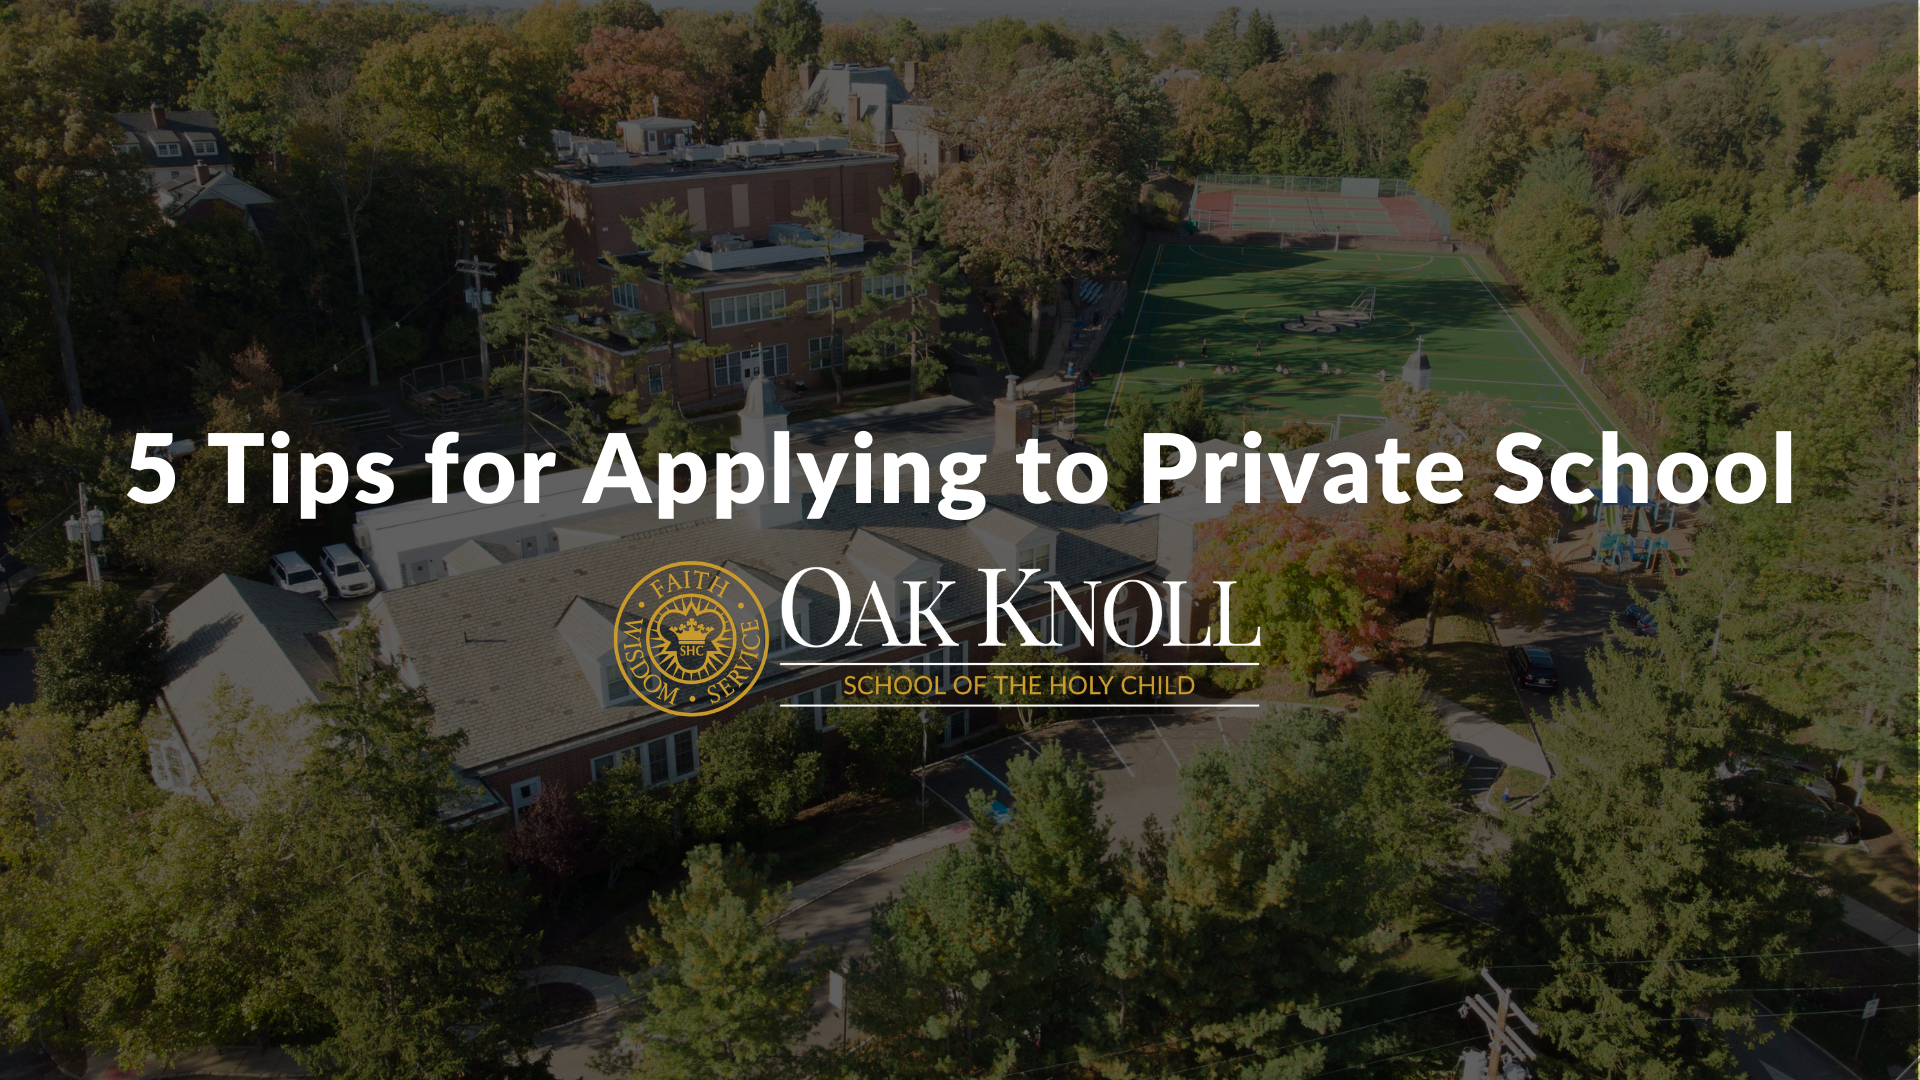 5 Tips for Applying to Private School